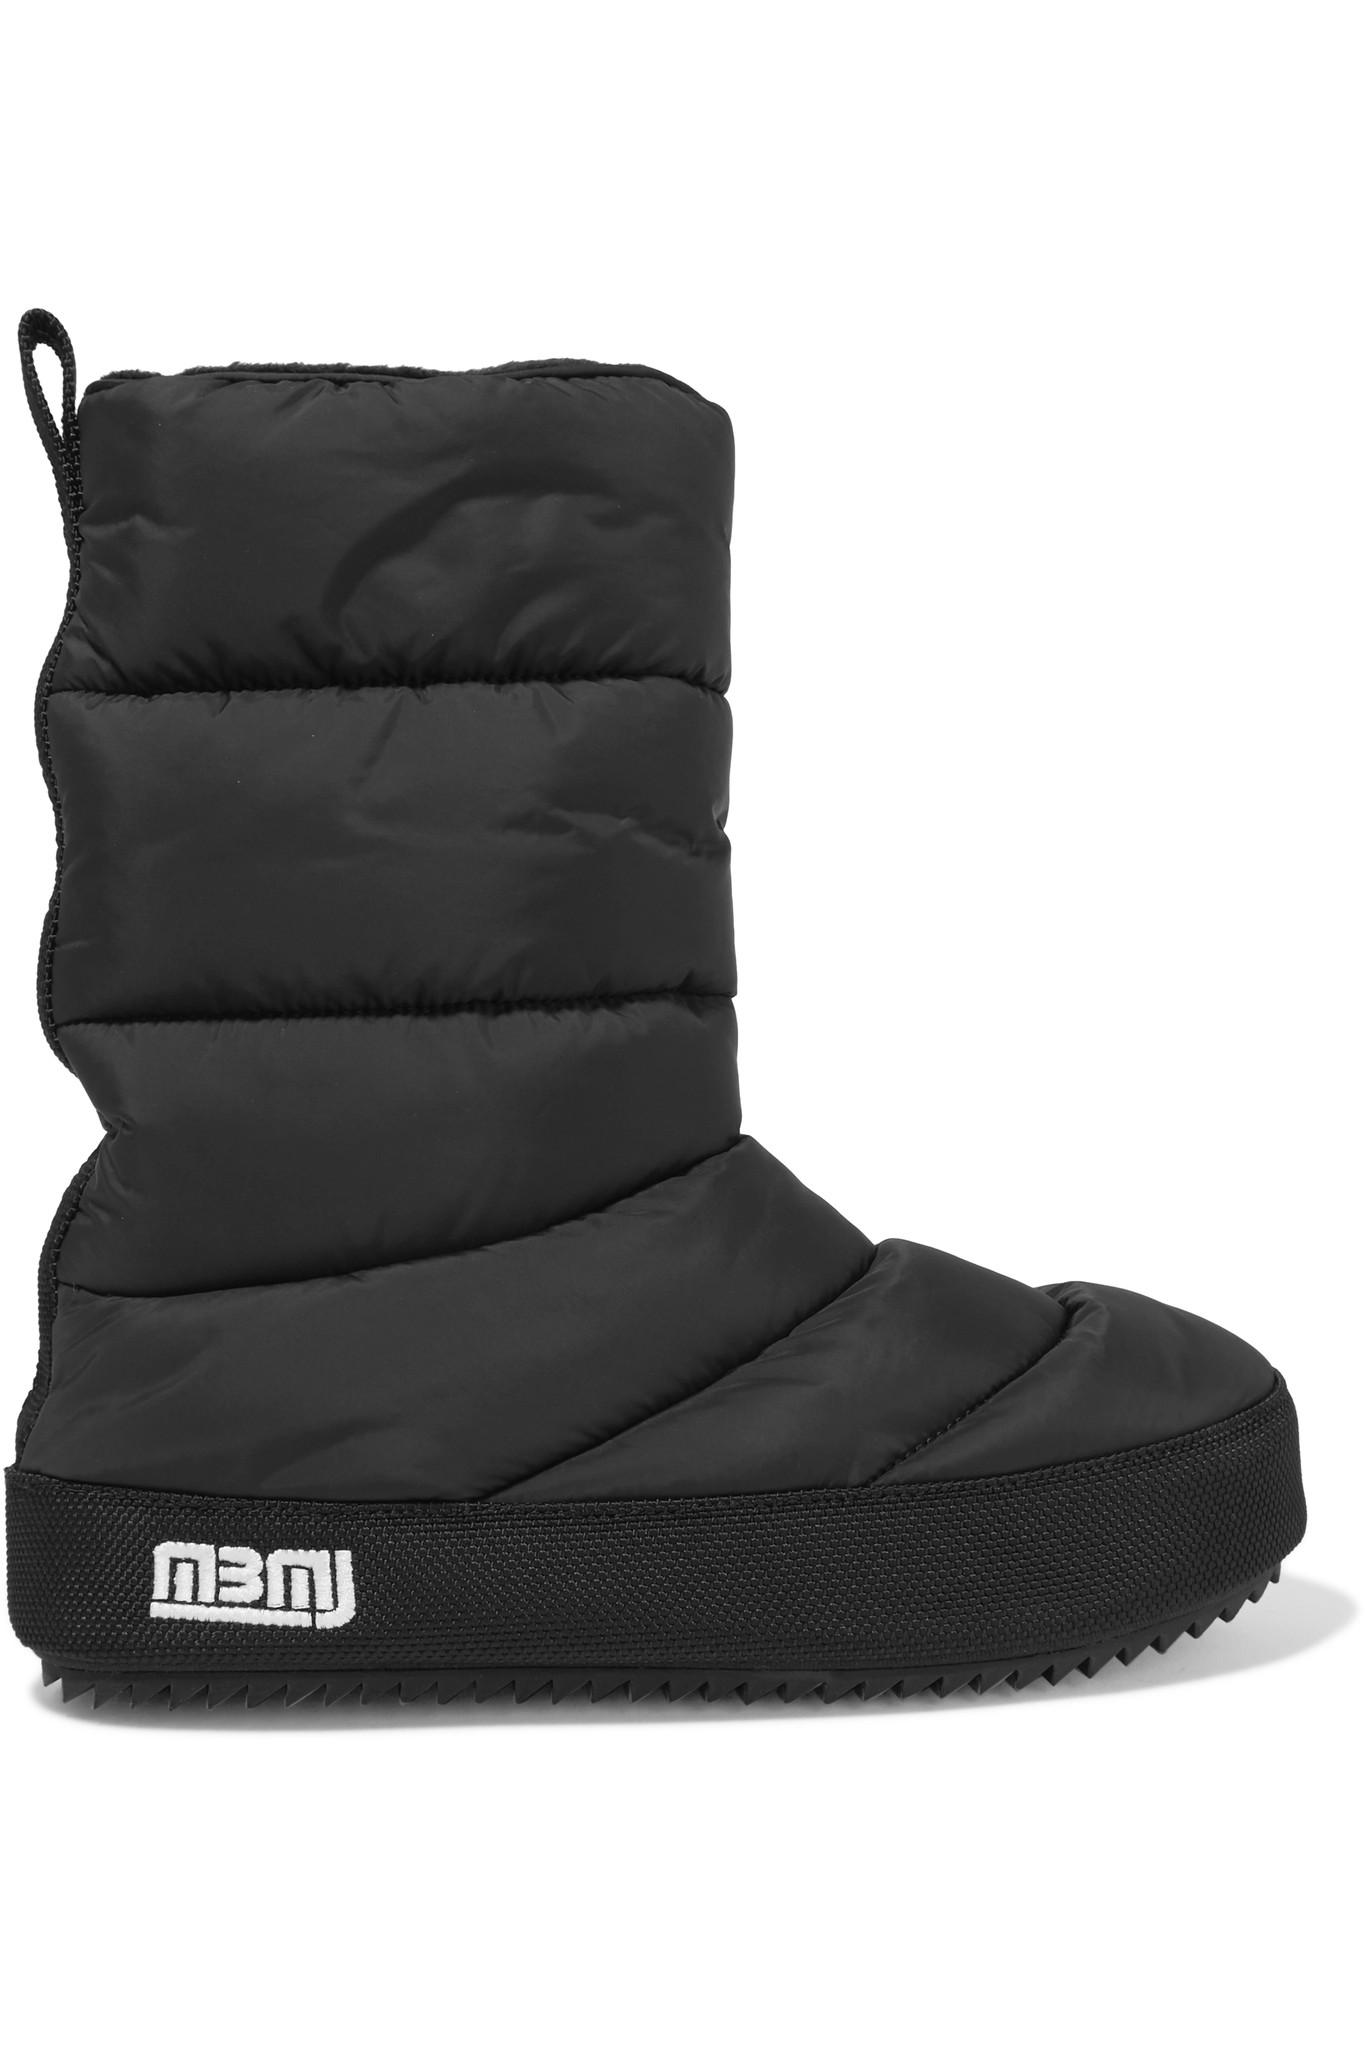 Marc By Marc Jacobs. Women's Black Howard Quilted Shell Boots